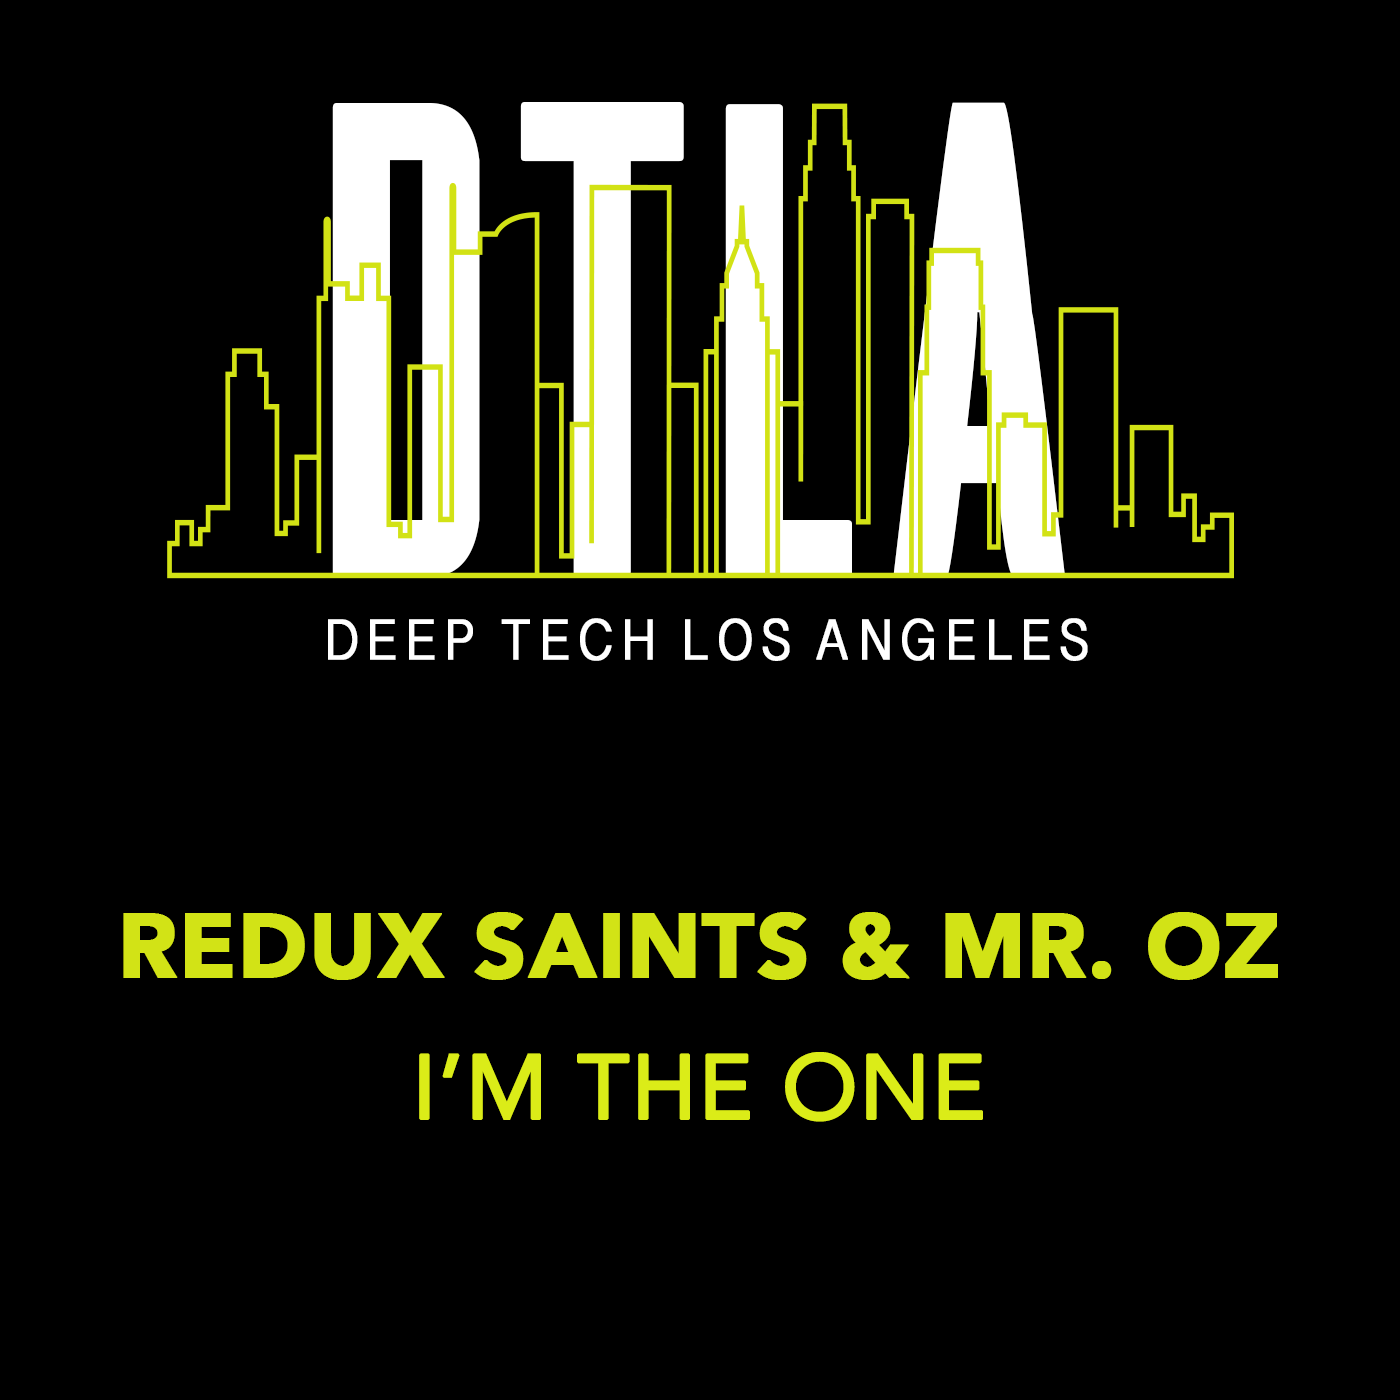 REDUX SAINTS & MR. OZ